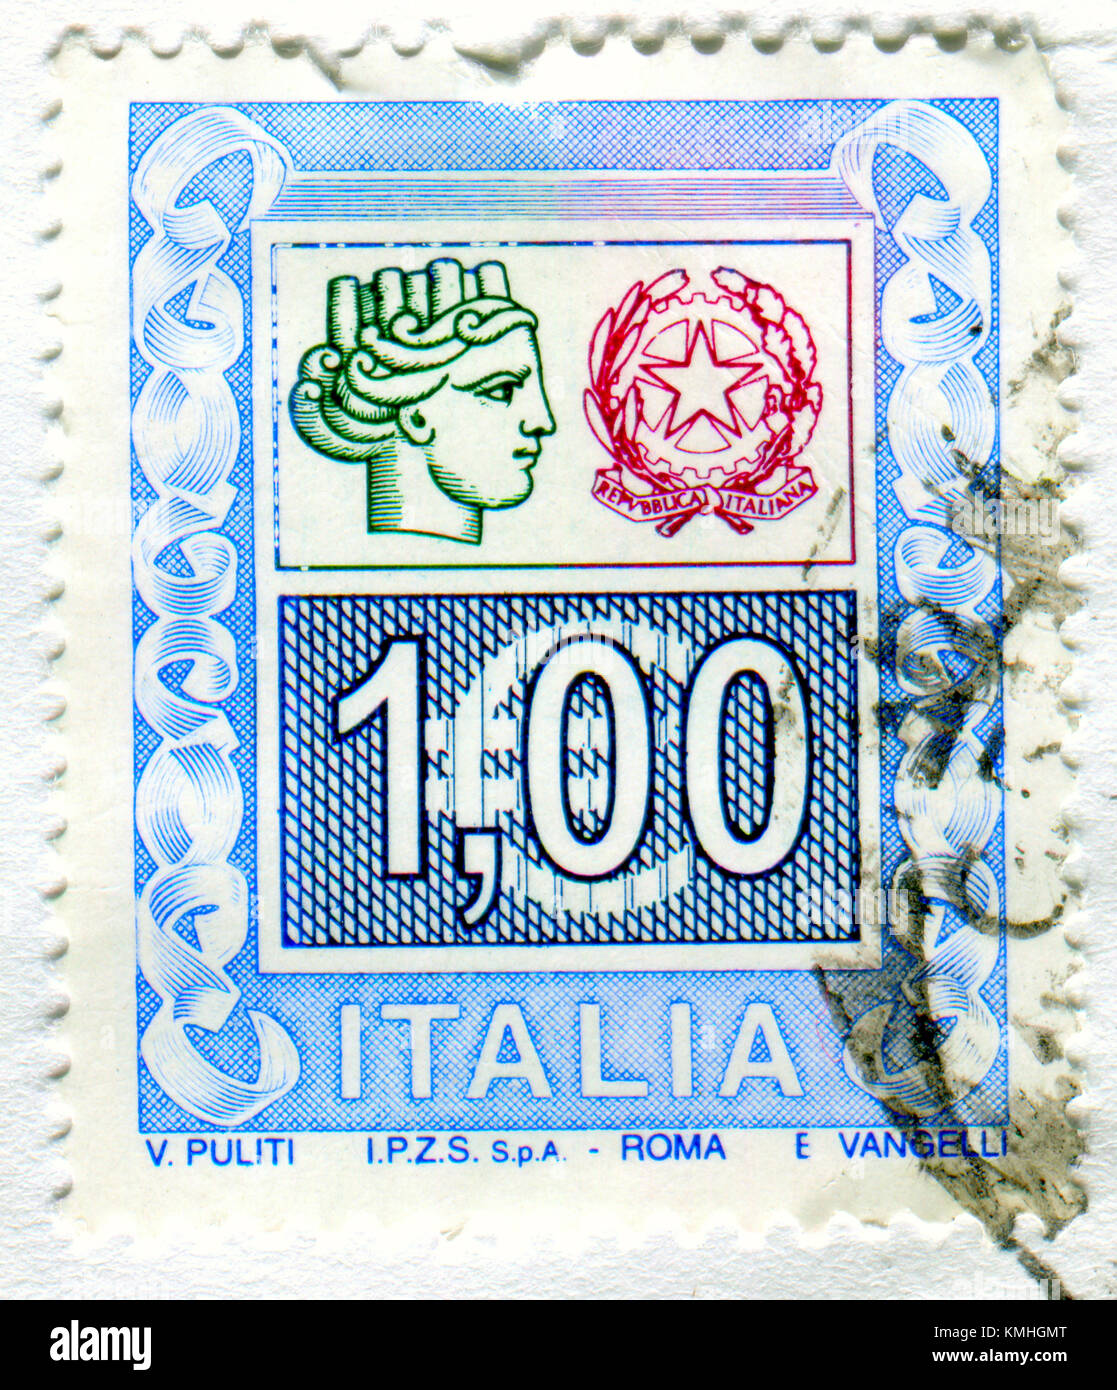 GOMEL, BELARUS, 4 DECEMBER 2017, Stamp printed in Italy shows image of the Republica Italiana, circa 2017. Stock Photo